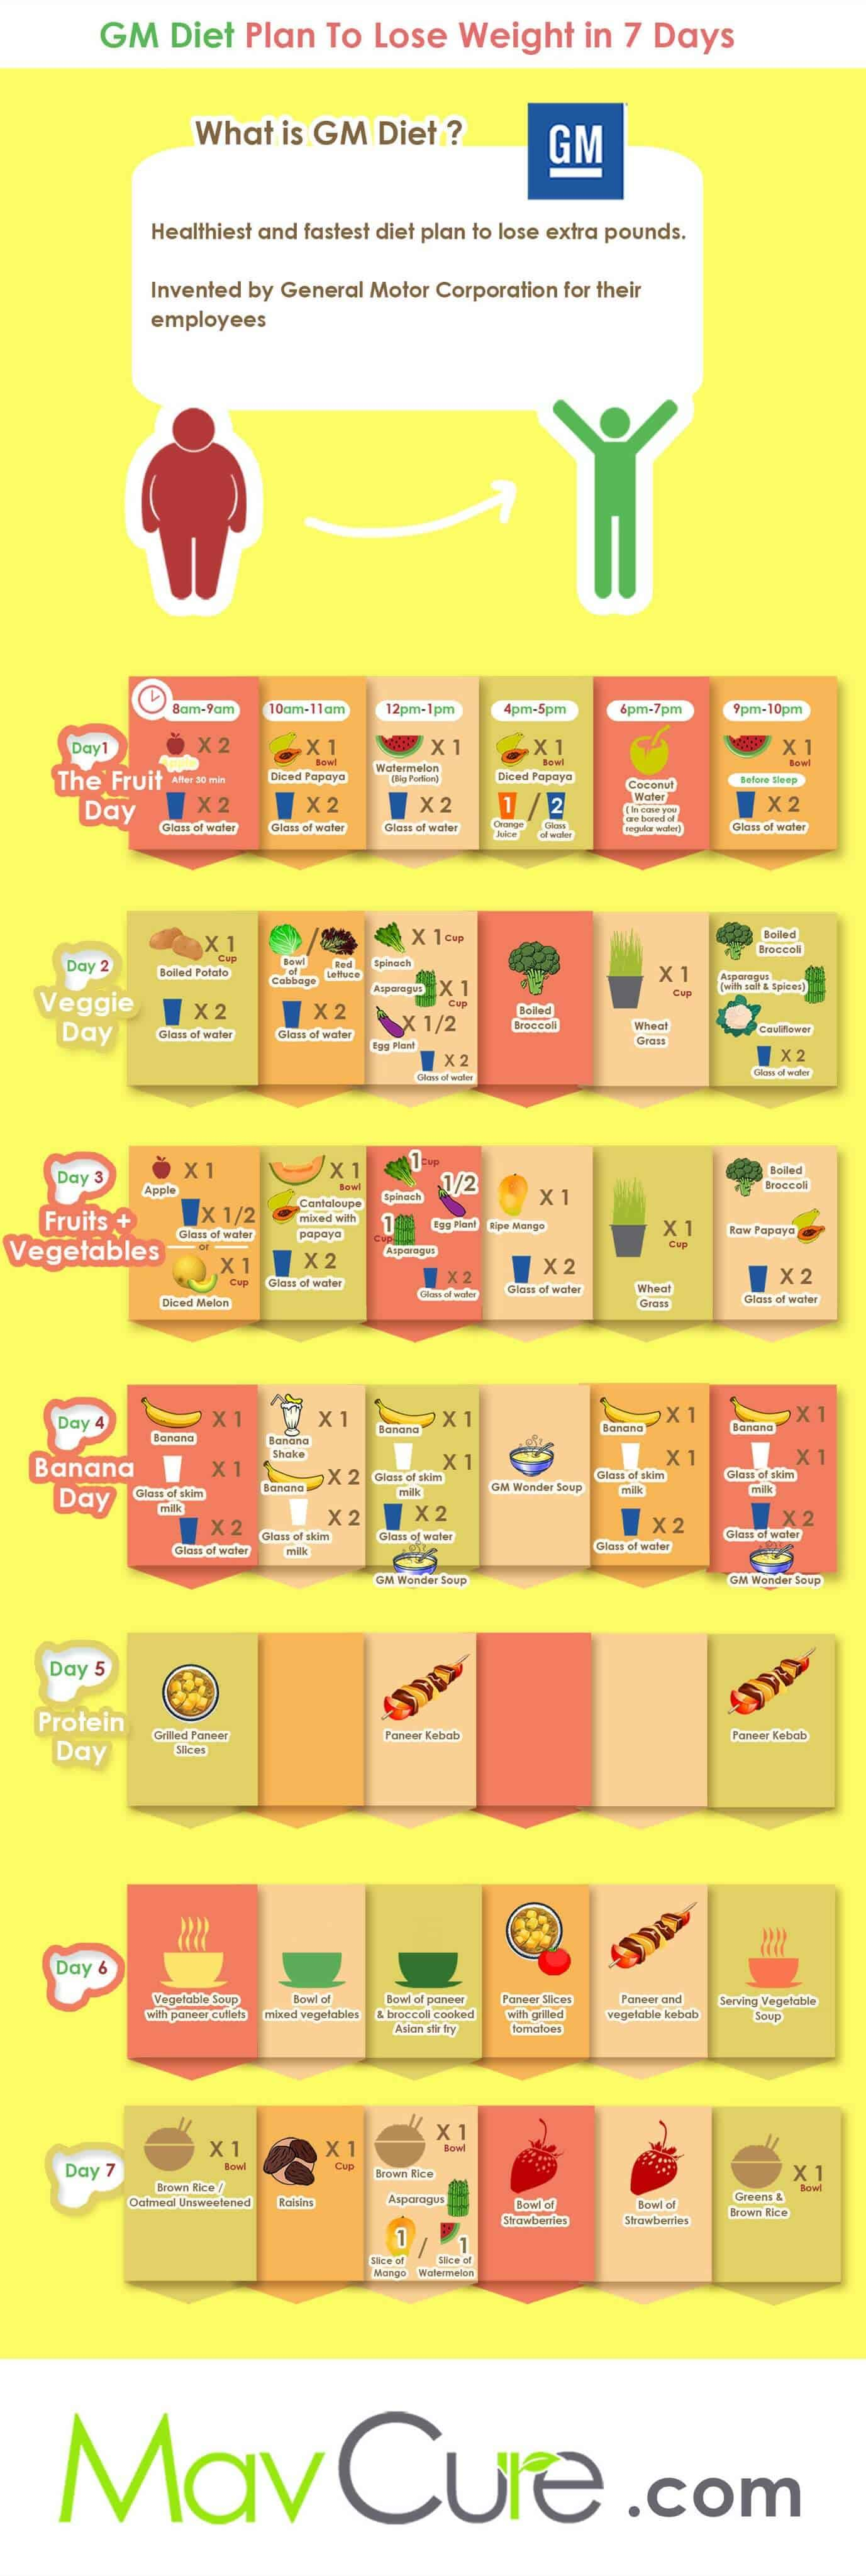 GM DIET PLAN CHART